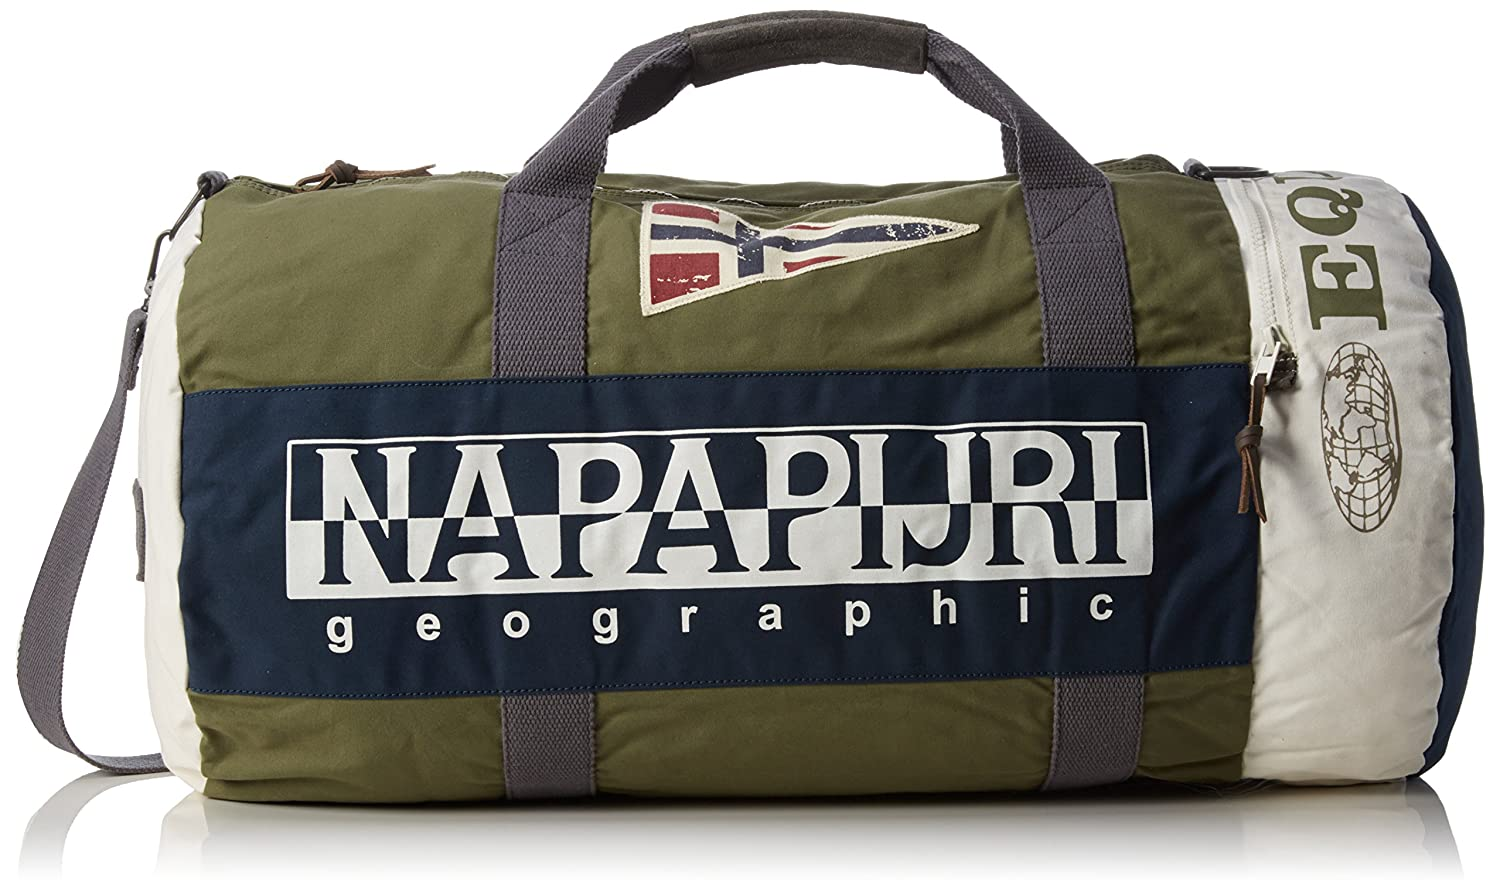 Napapijri Men s EQUATOR EVO Shoulder Bag Green Grün (LIGHT OLIVE GA6)   Amazon.co.uk  Luggage 3f2428ffb7ed